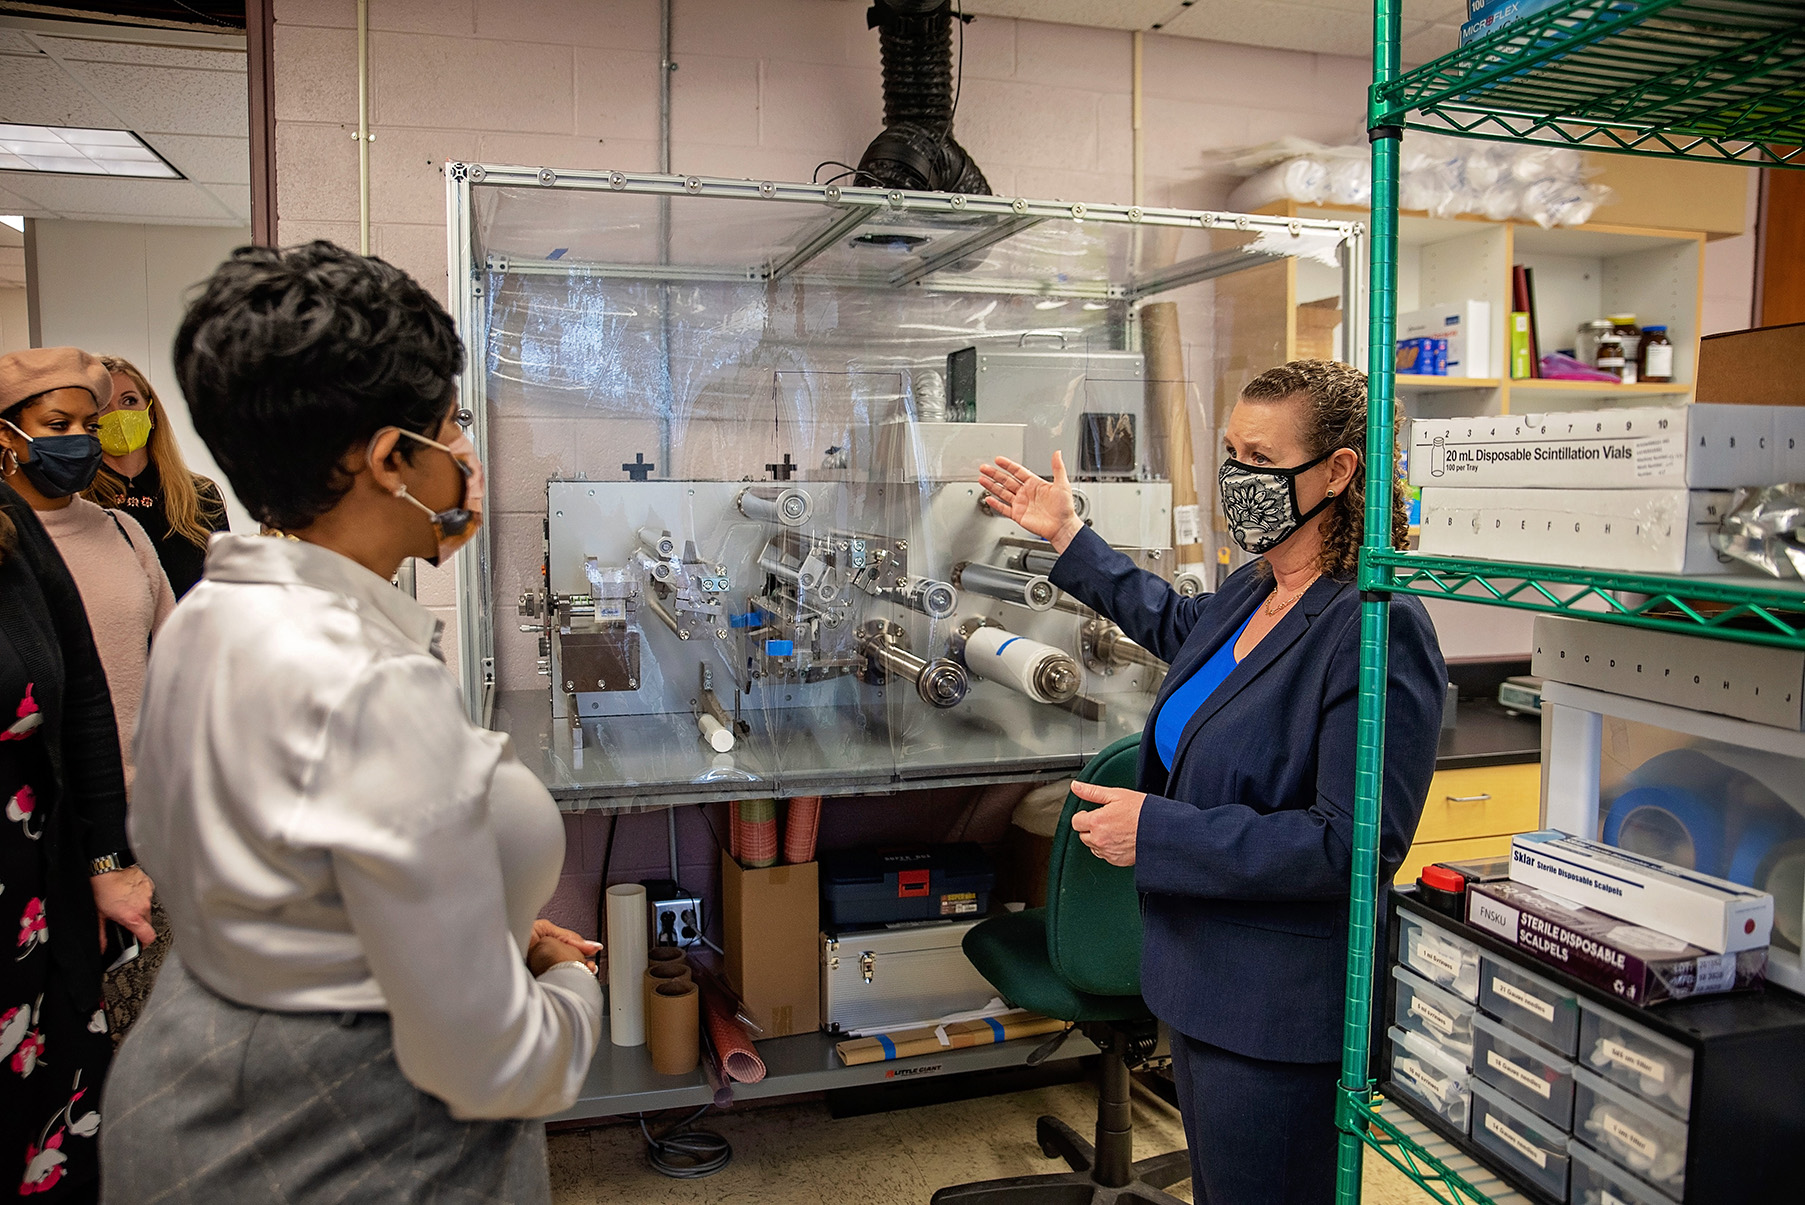 Secretary Sanders learned more about NALA Systems work to develop new reverse osmosis membranes for water desalination.